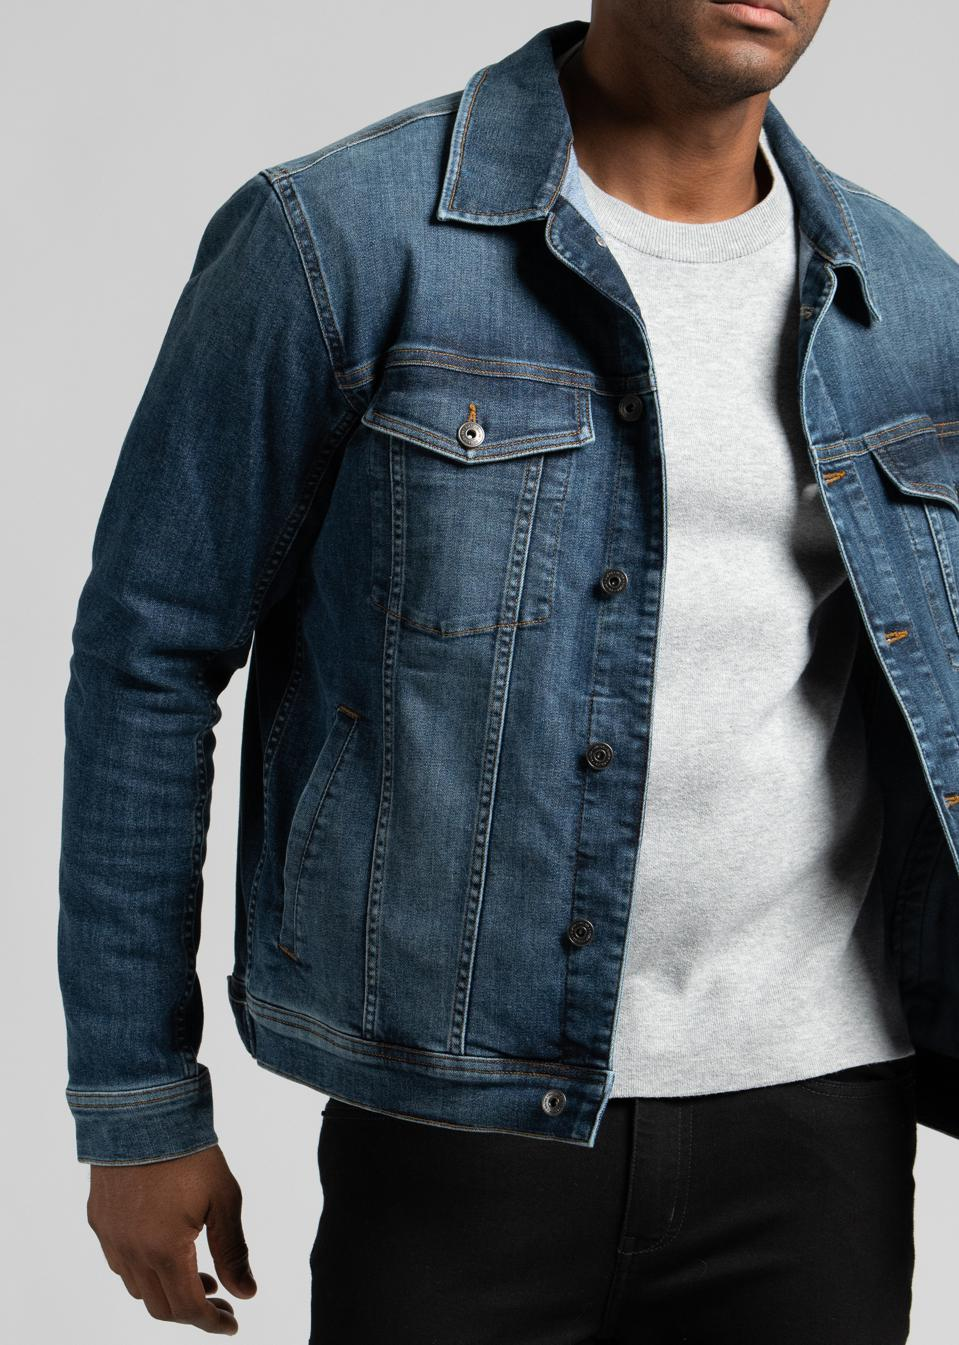 For your weekend adventure or daily commute. This modern and slim-fit jacket features felled seams throughout for durability and traditional chest pockets in a classic rinse wash.